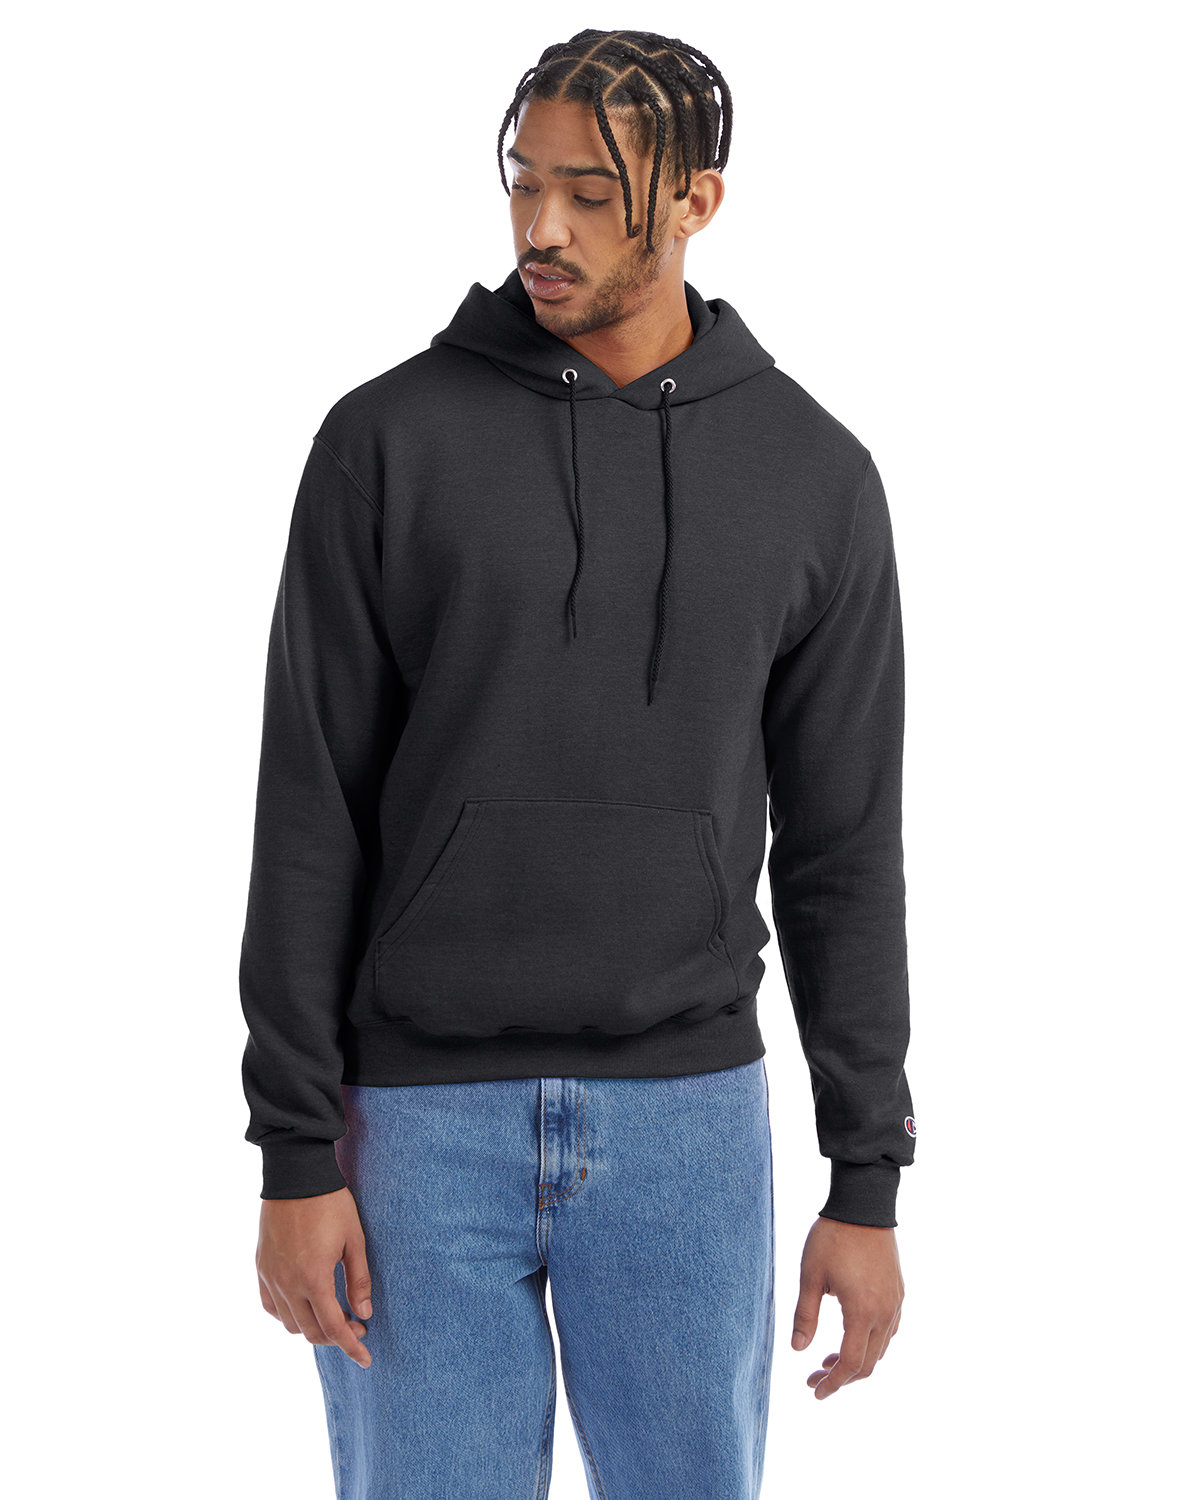 Champion Adult Double Dry Eco® Pullover Hooded Sweatshirt CHARCOAL HEATHER